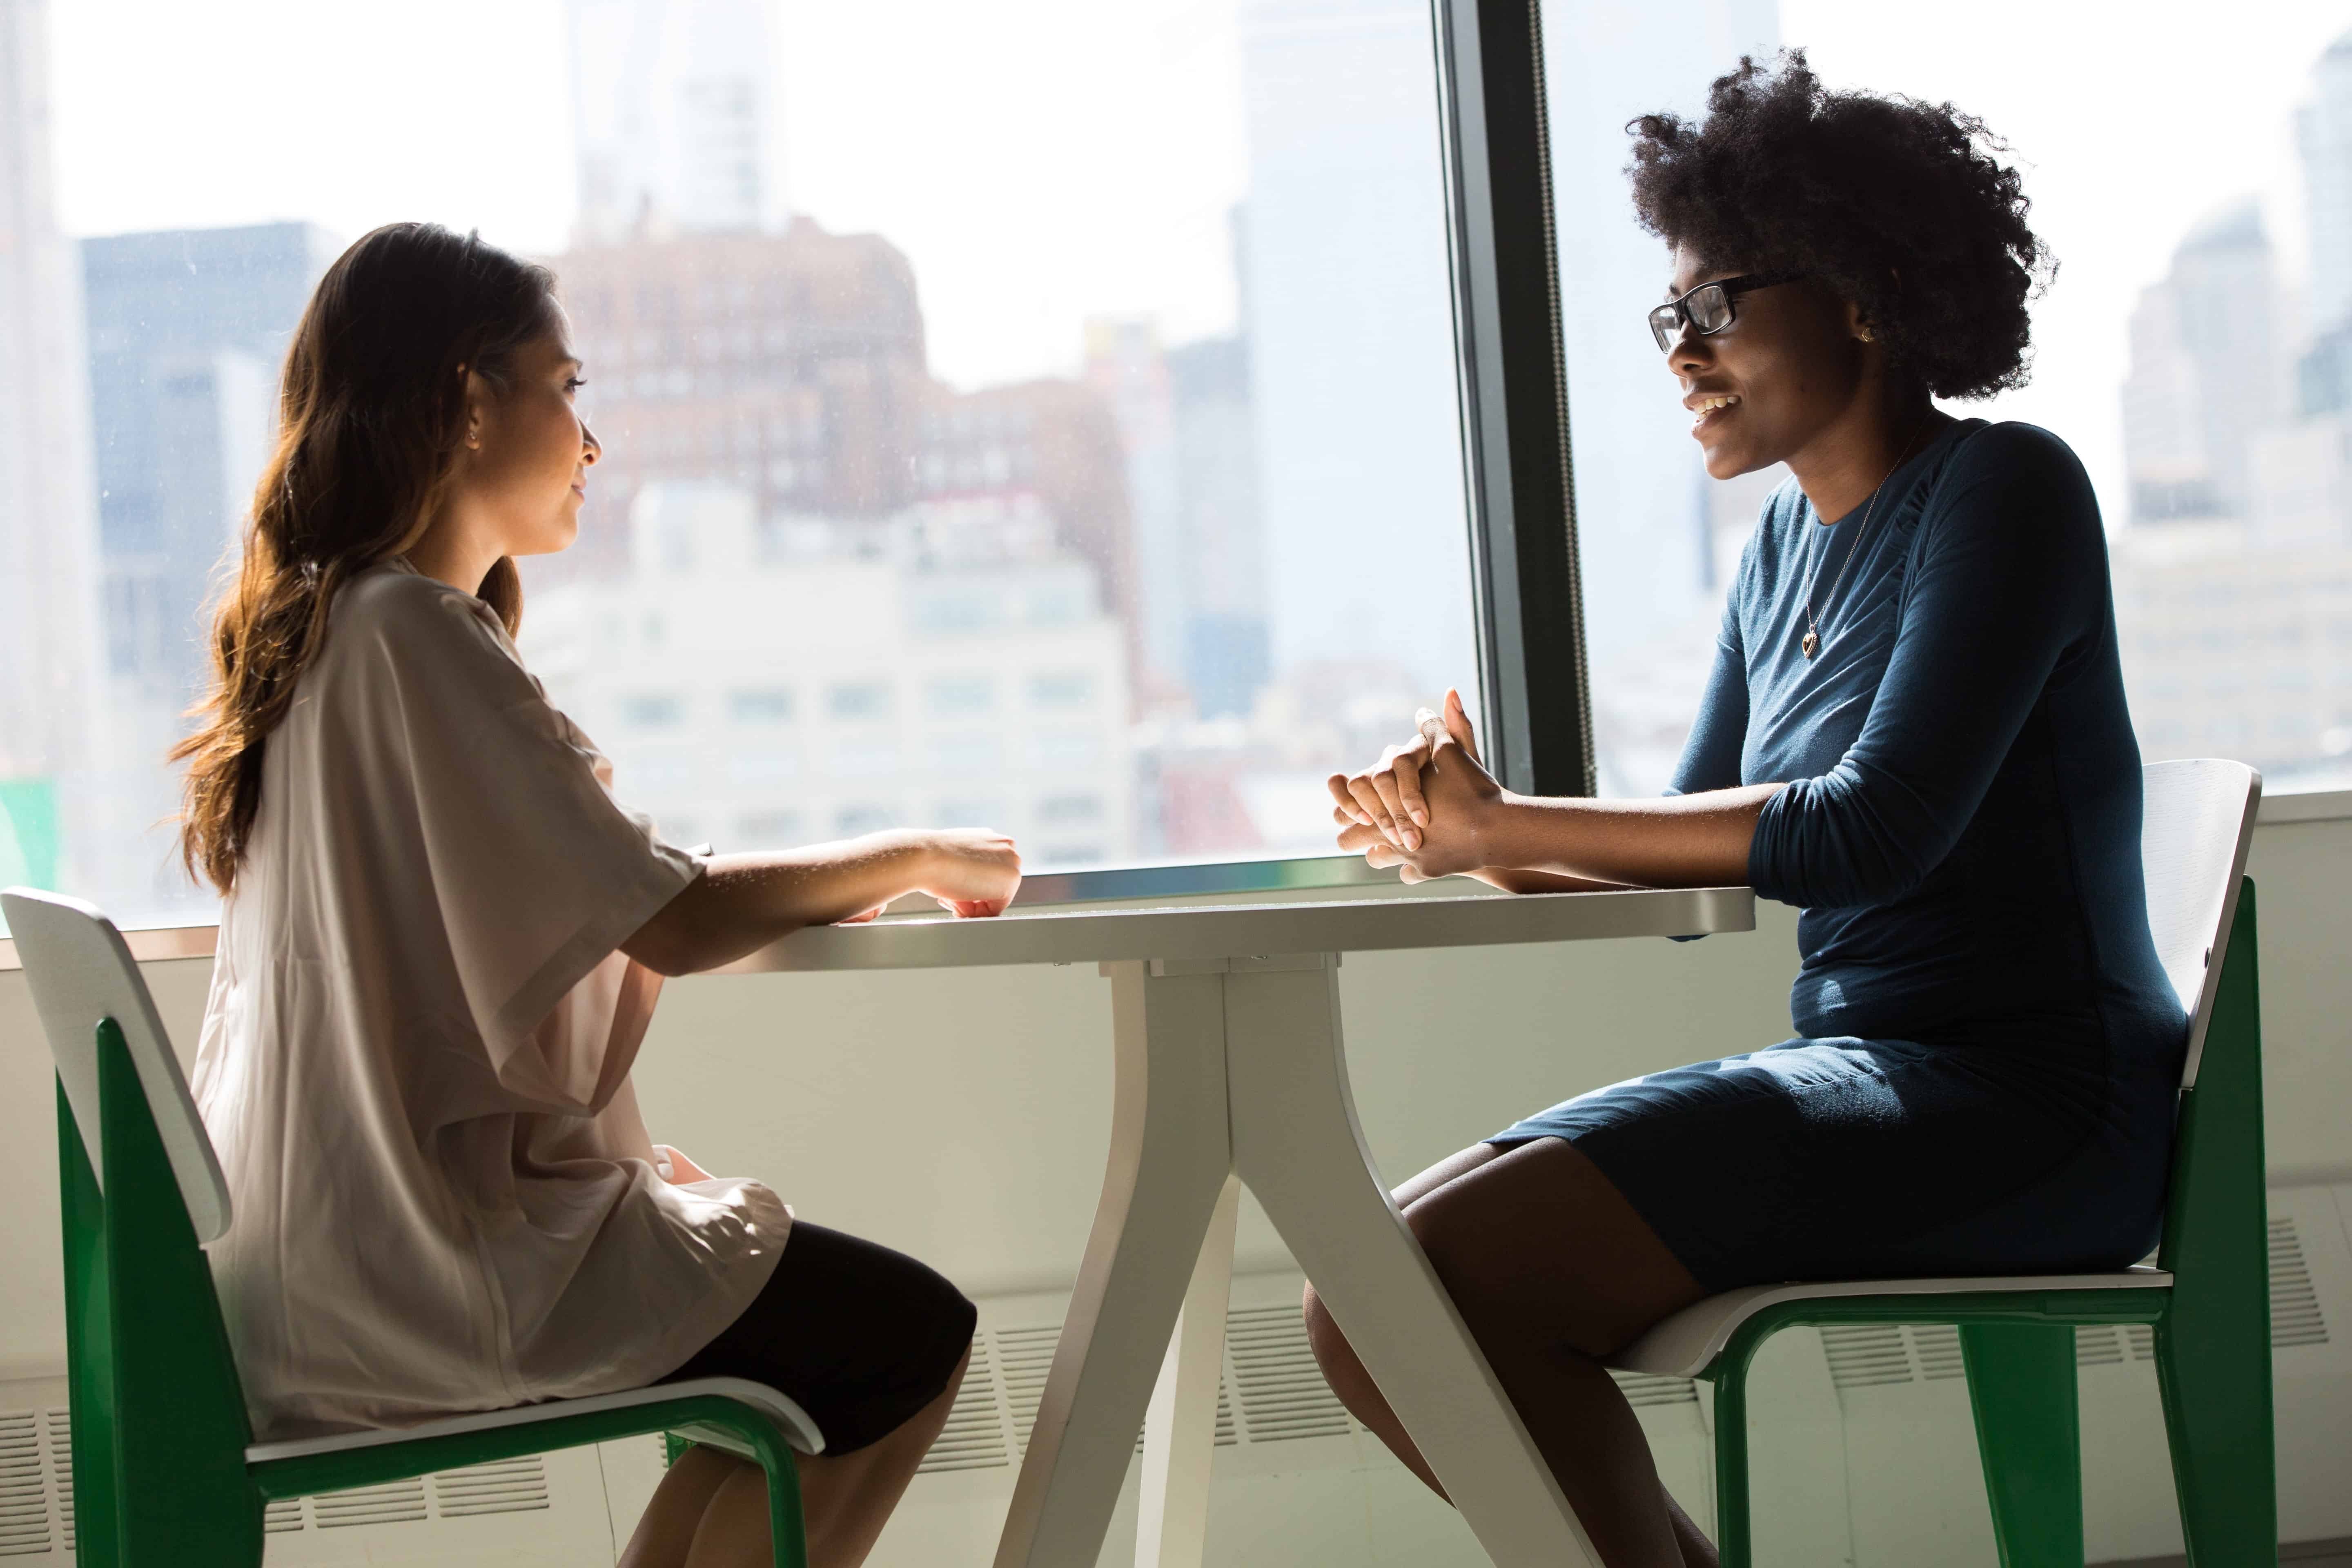 Two women communicating effectively in the work place